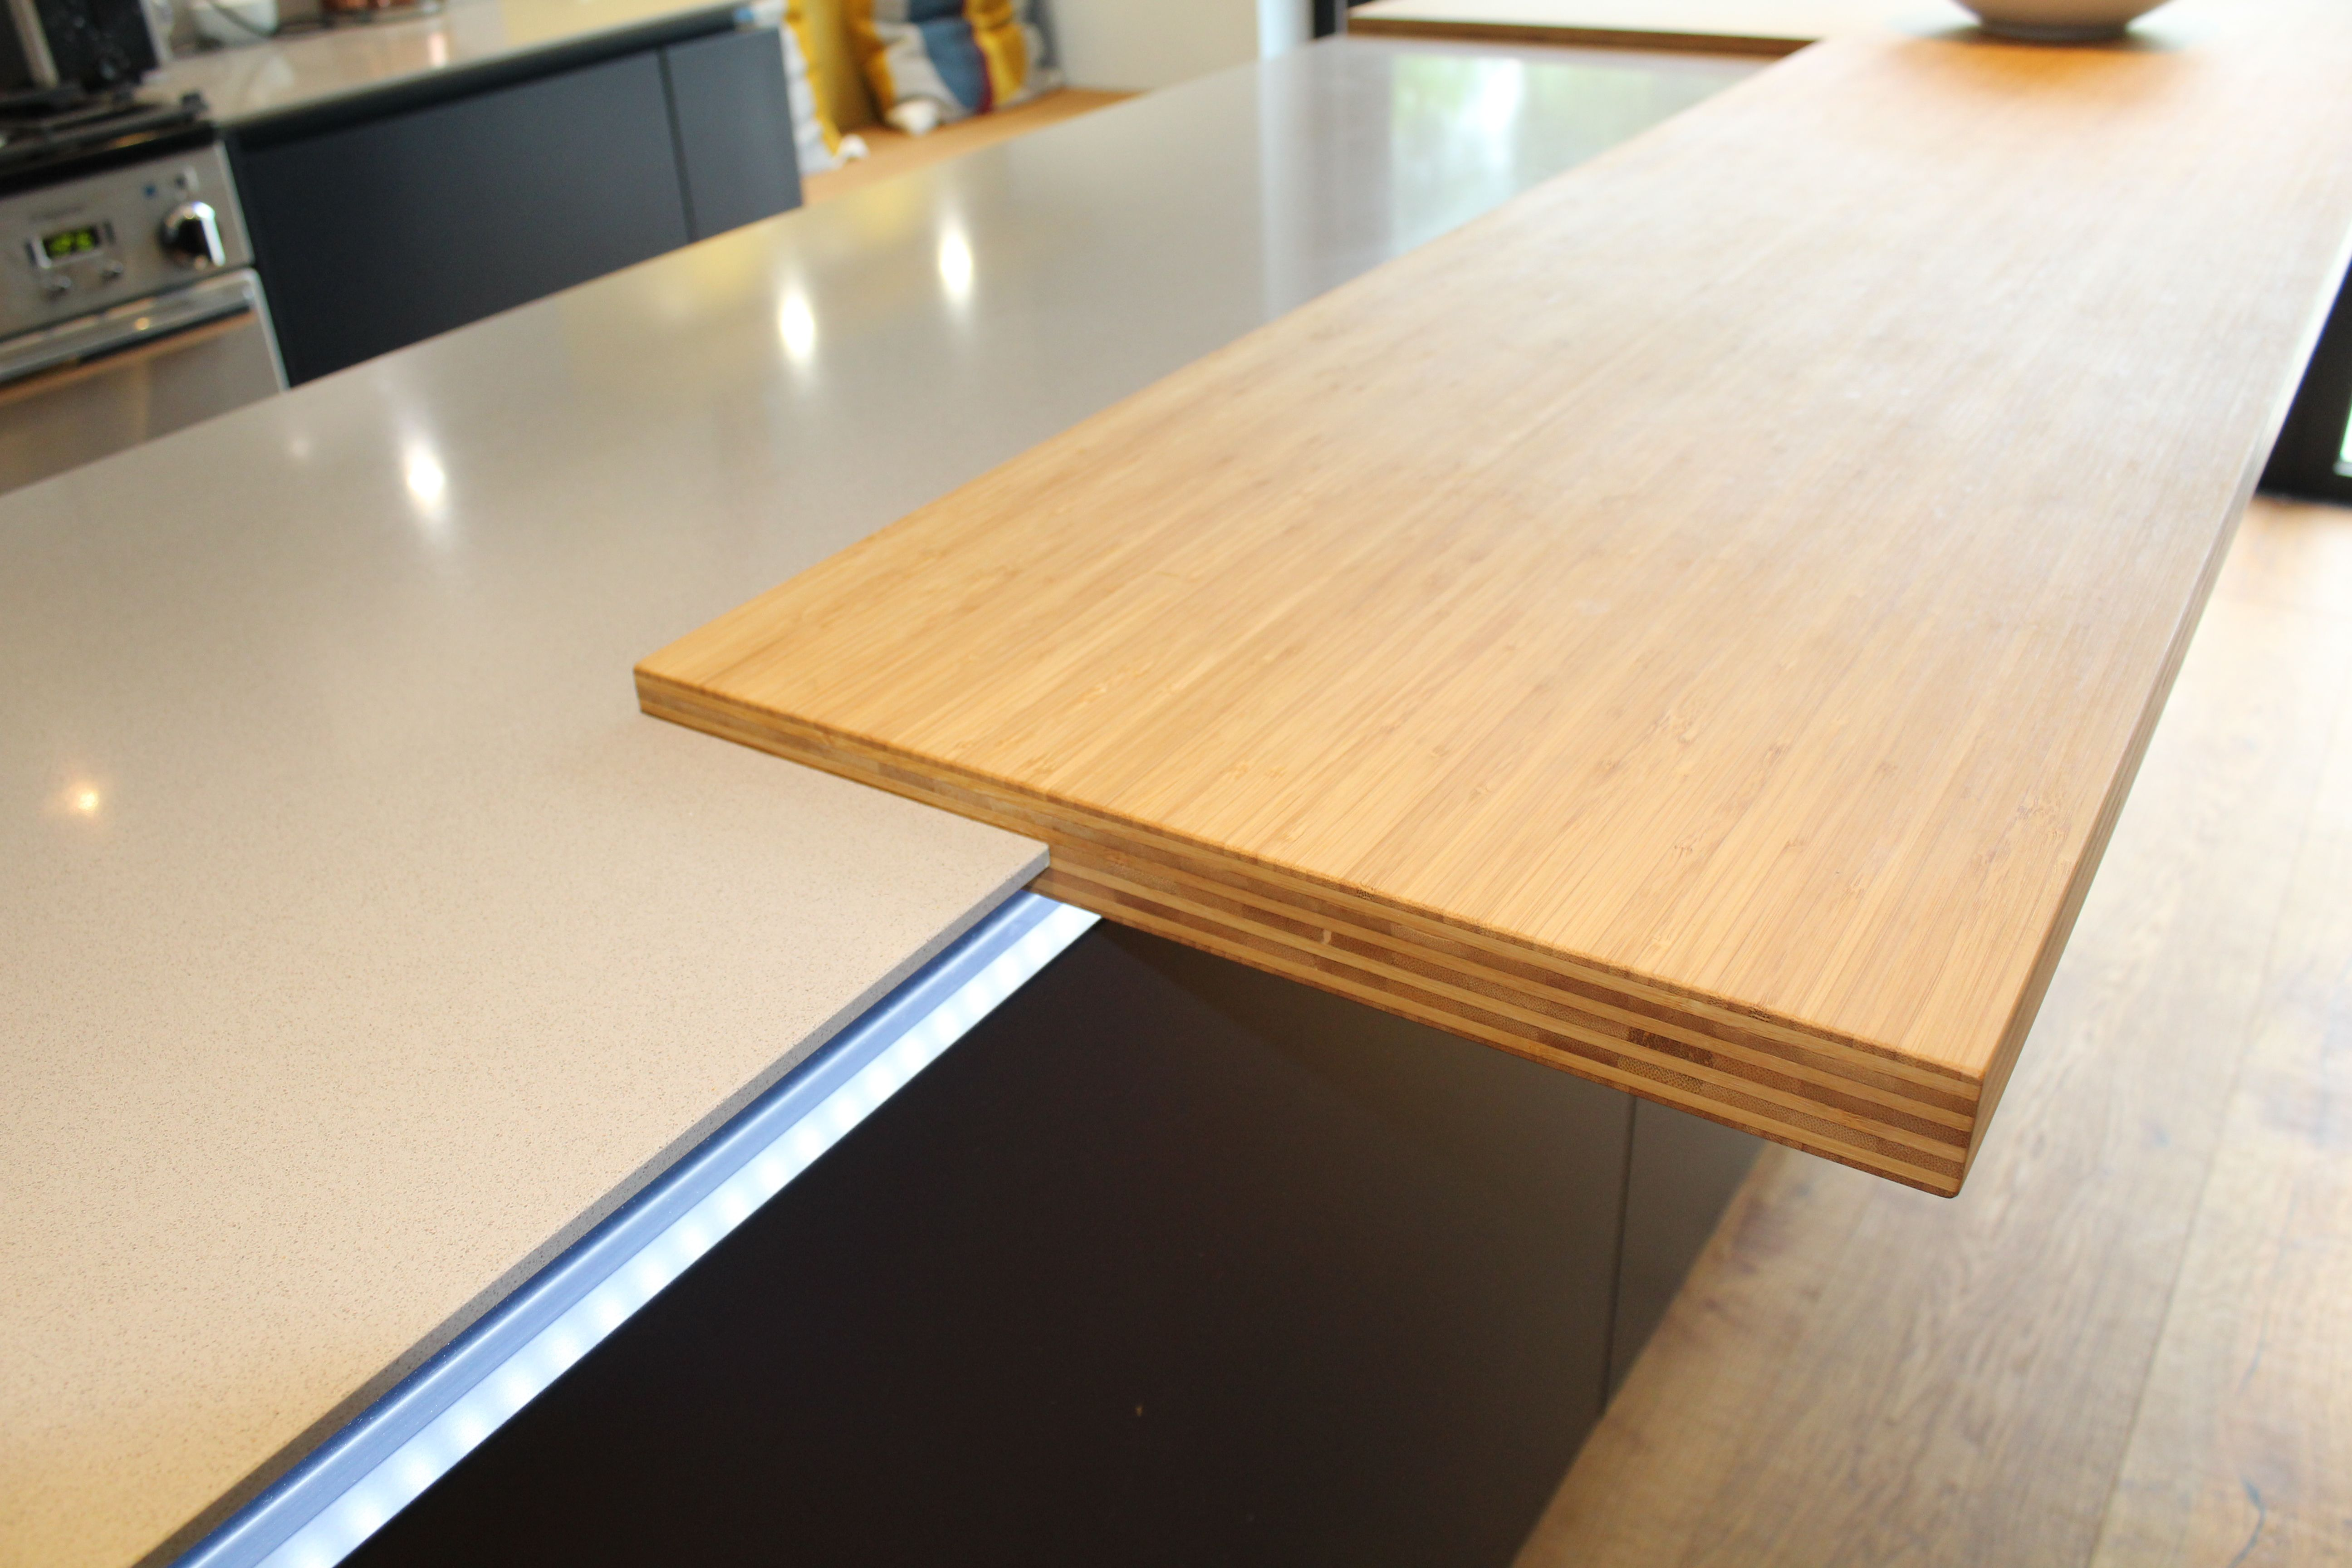 Delicieux Spekva Bamboo Bar Top On ALNOSTAR SUND Kitchen By Phil Harflett Of The ALNO  Store Bristol